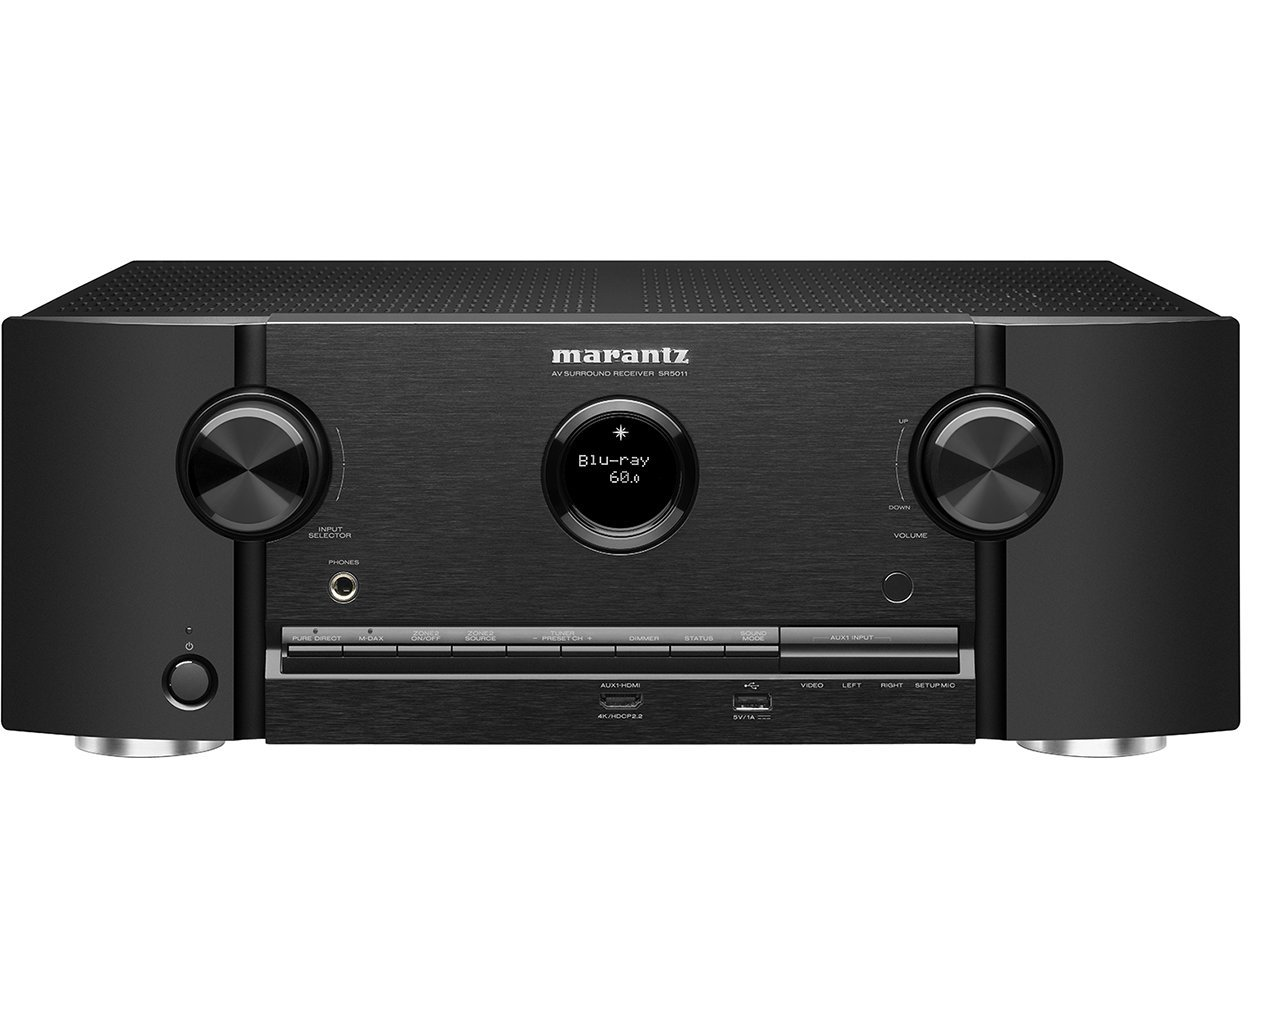 Amazon.com: Marantz SR5011 7.2 Channel Network Audio/Video Surround  Receiver with Bluetooth: Electronics